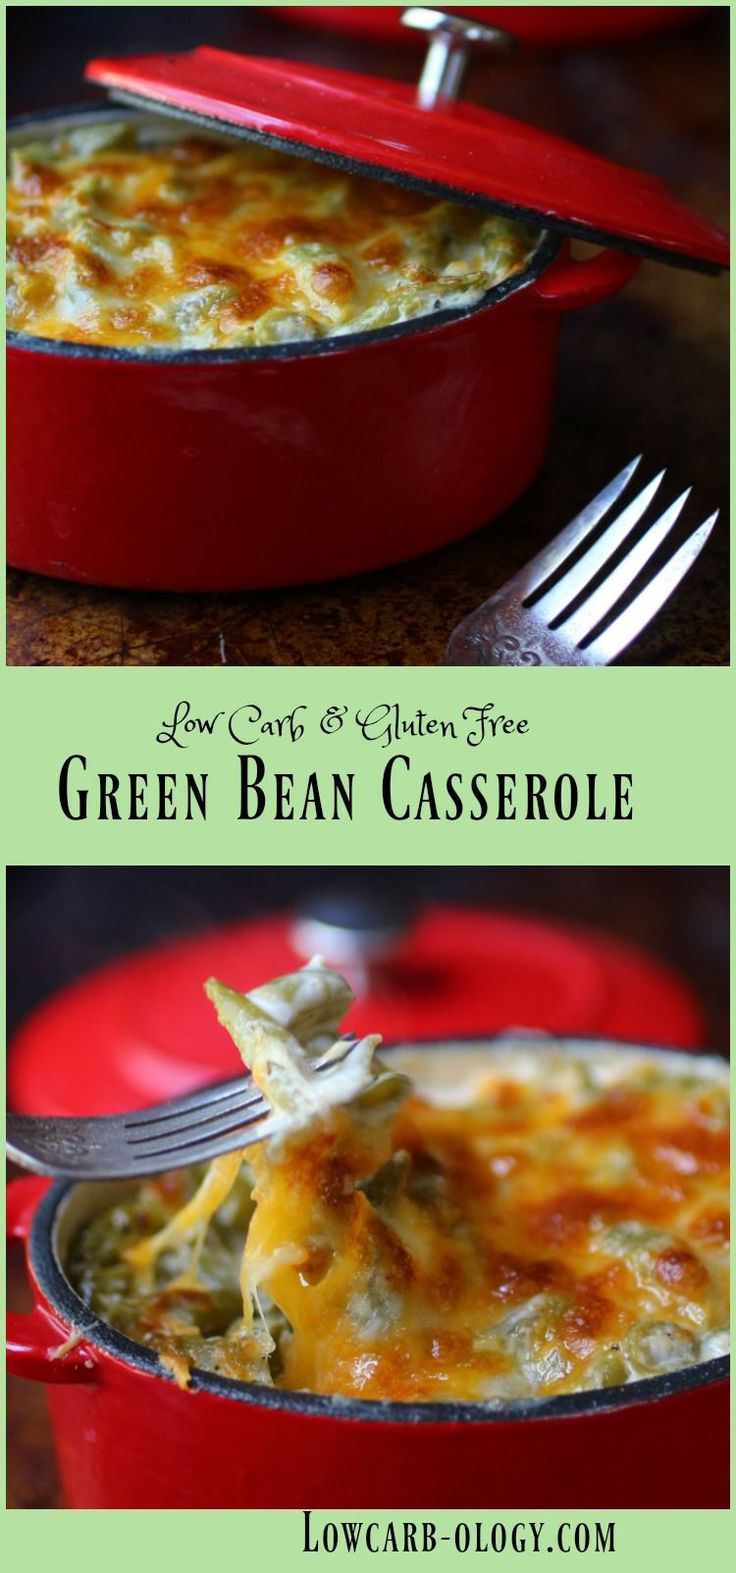 Decadent & creamy, this low carb green bean casserole is a scrumptious side dish. From Lowcarb-ology.com